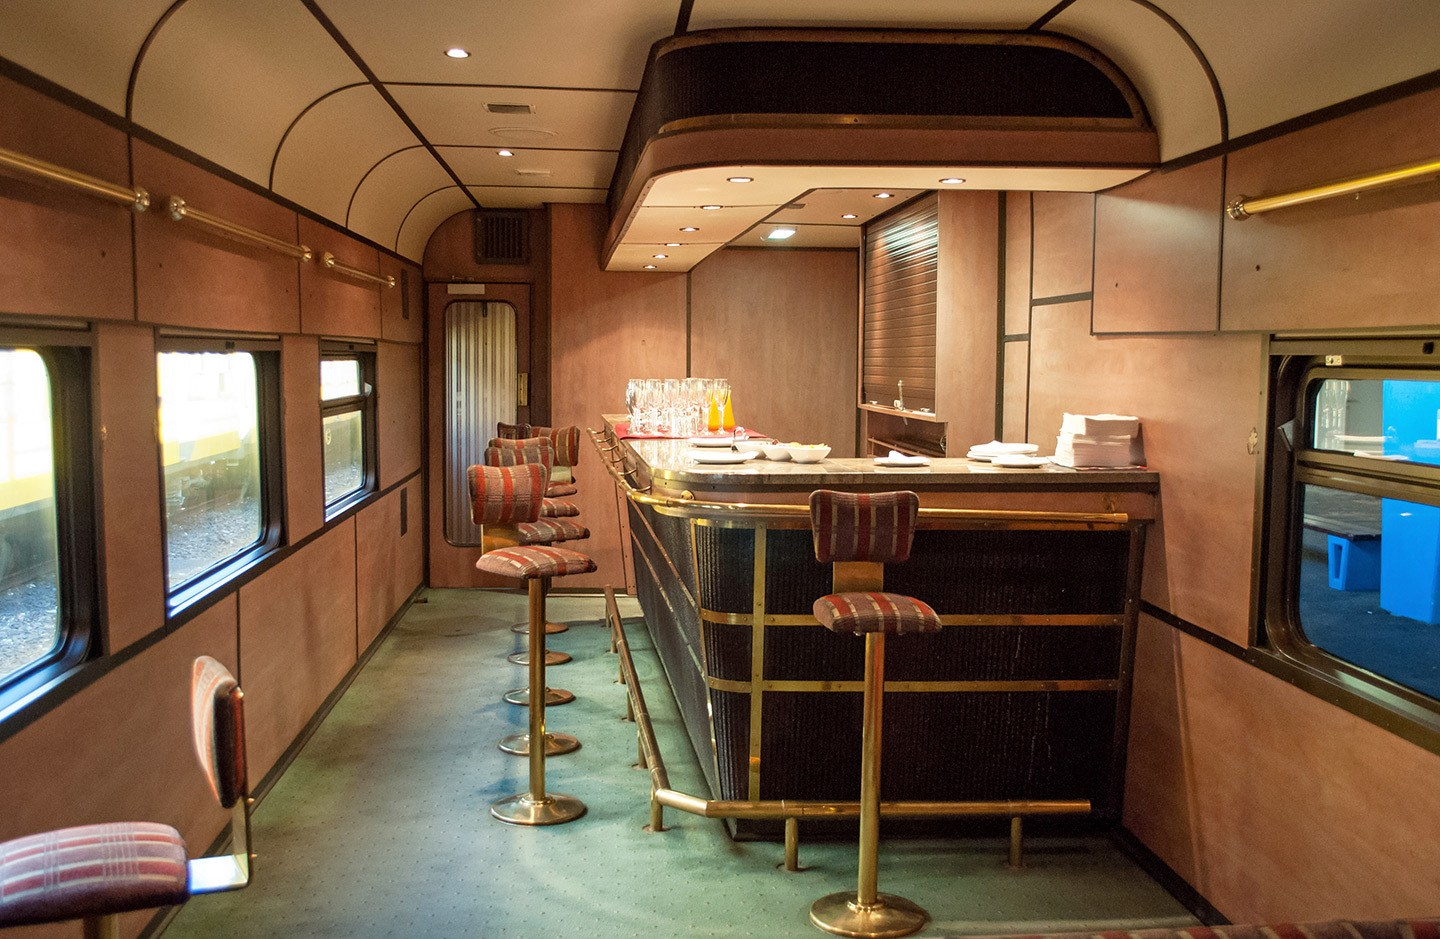 Premier Classe train lounge bar South Africa